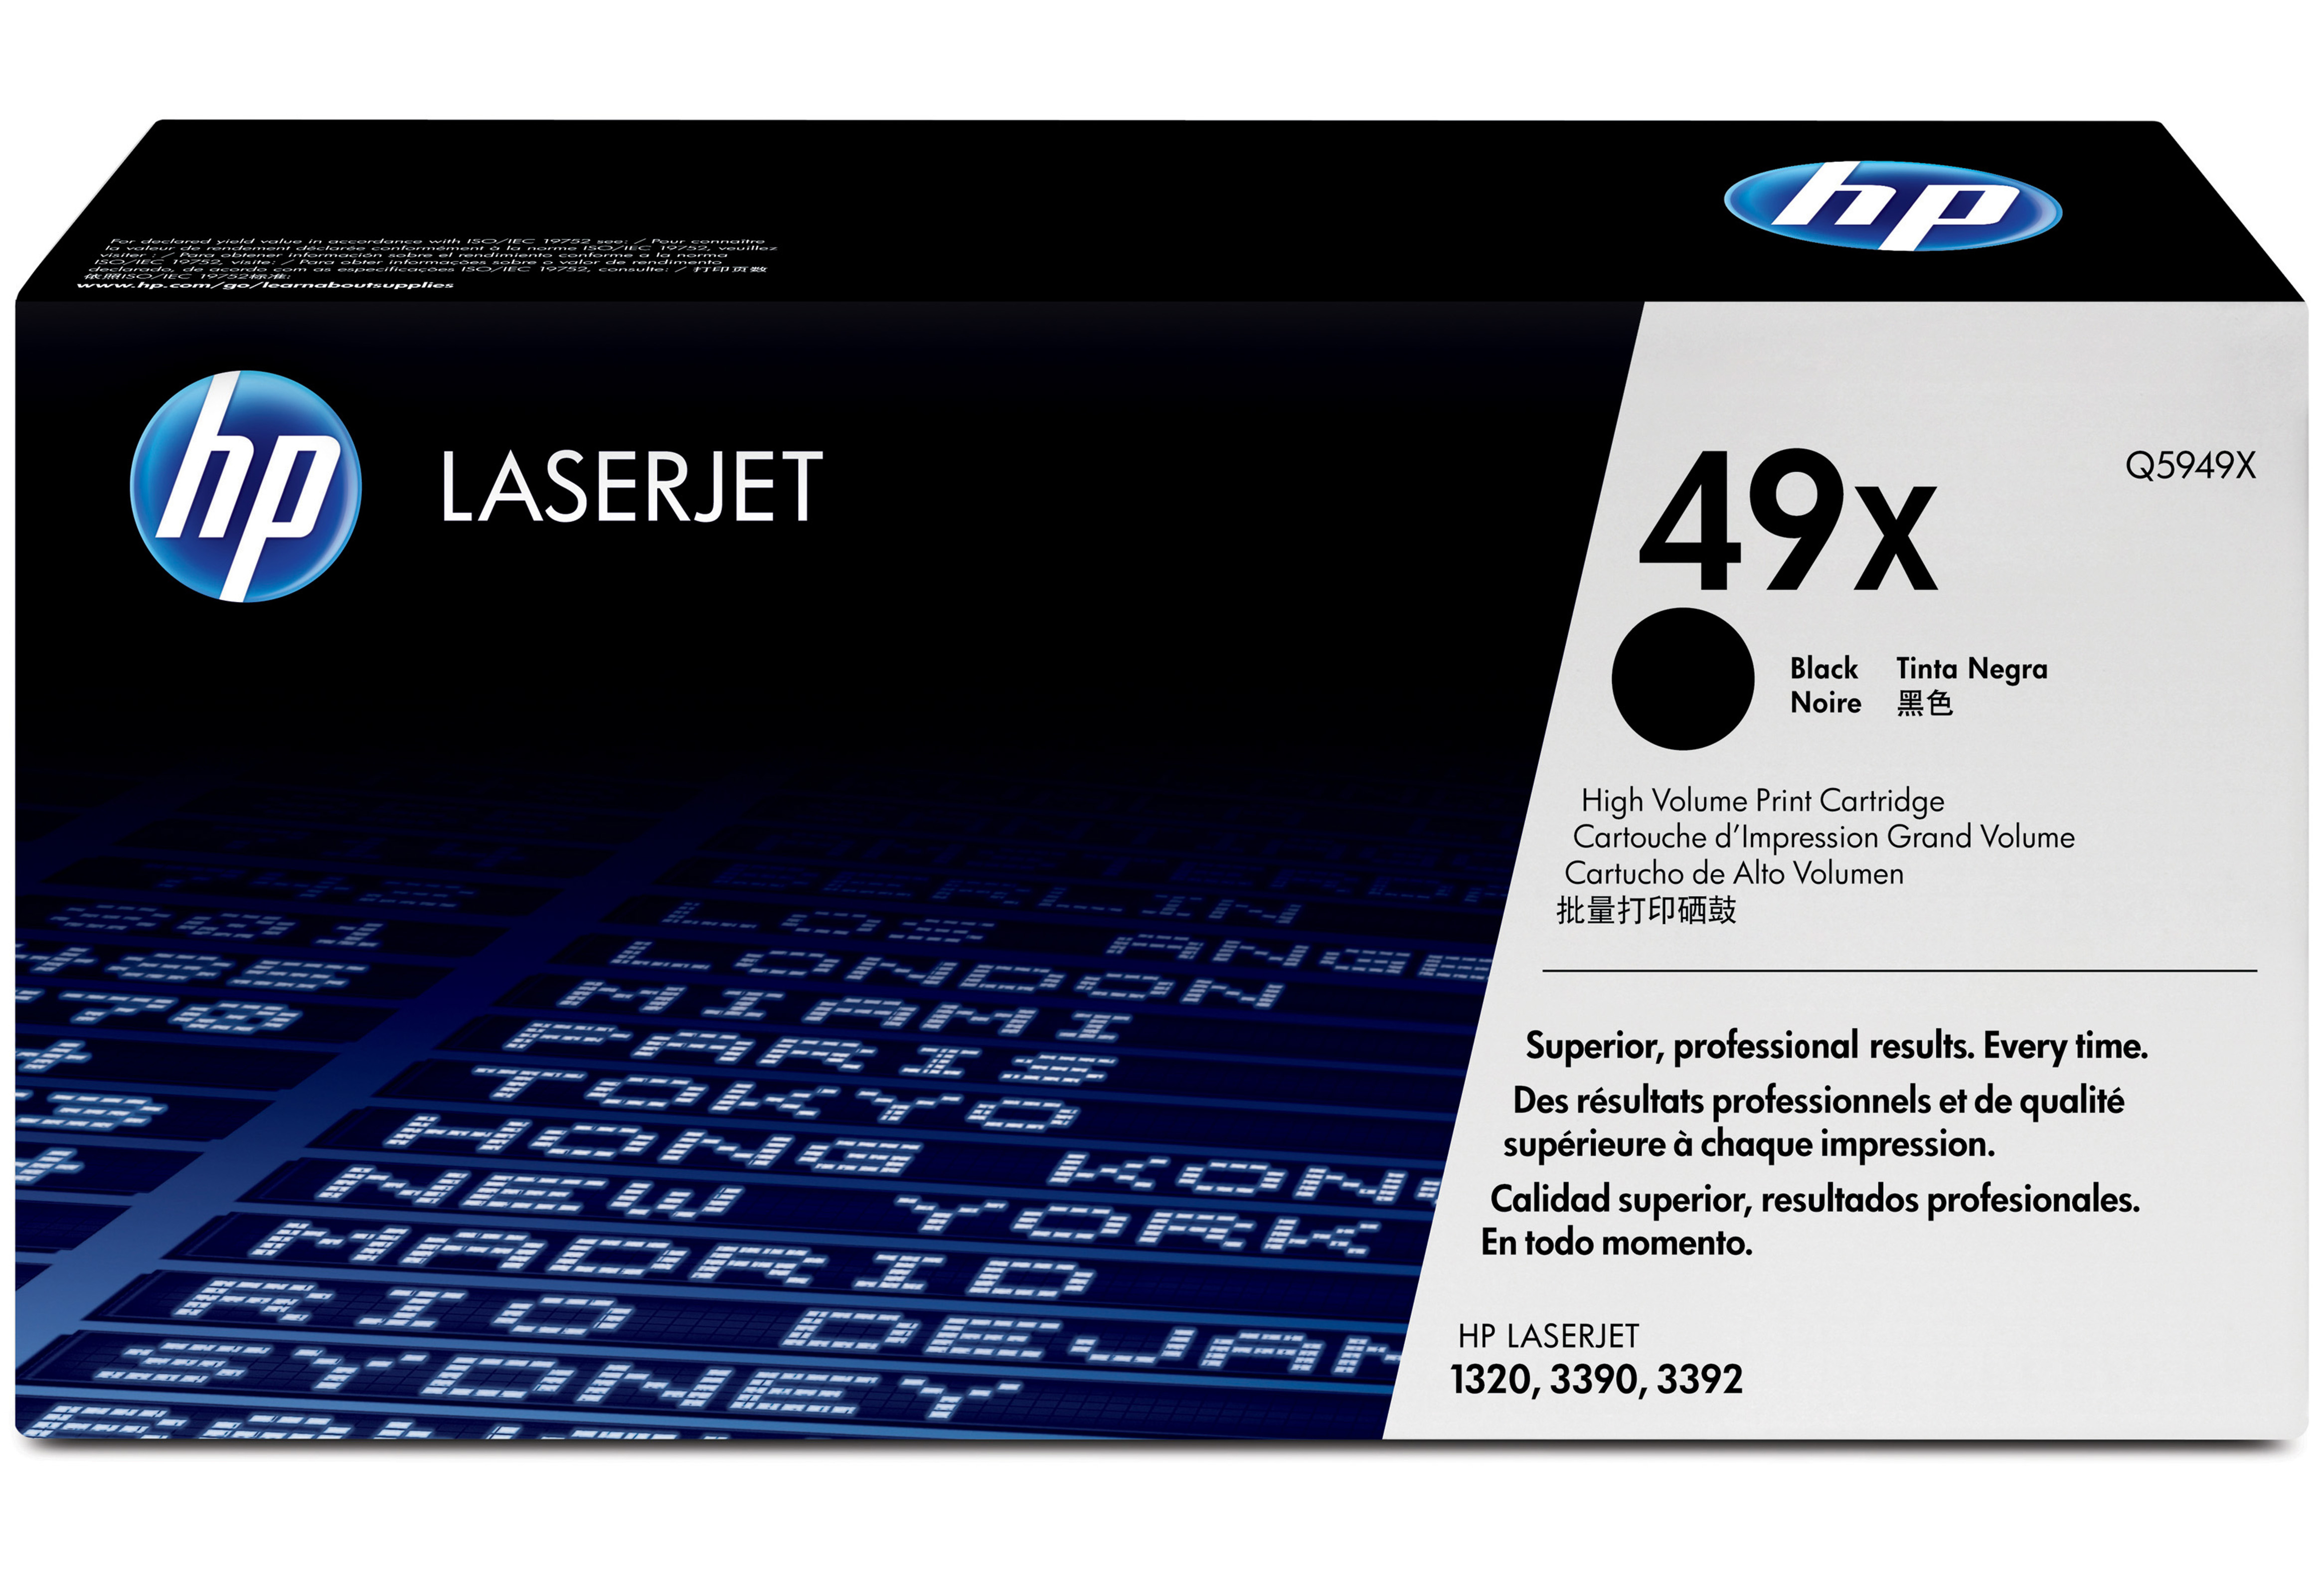 Remanufactured HP Q5949X Toner Cartridge Black 6K Q5949X - rem01